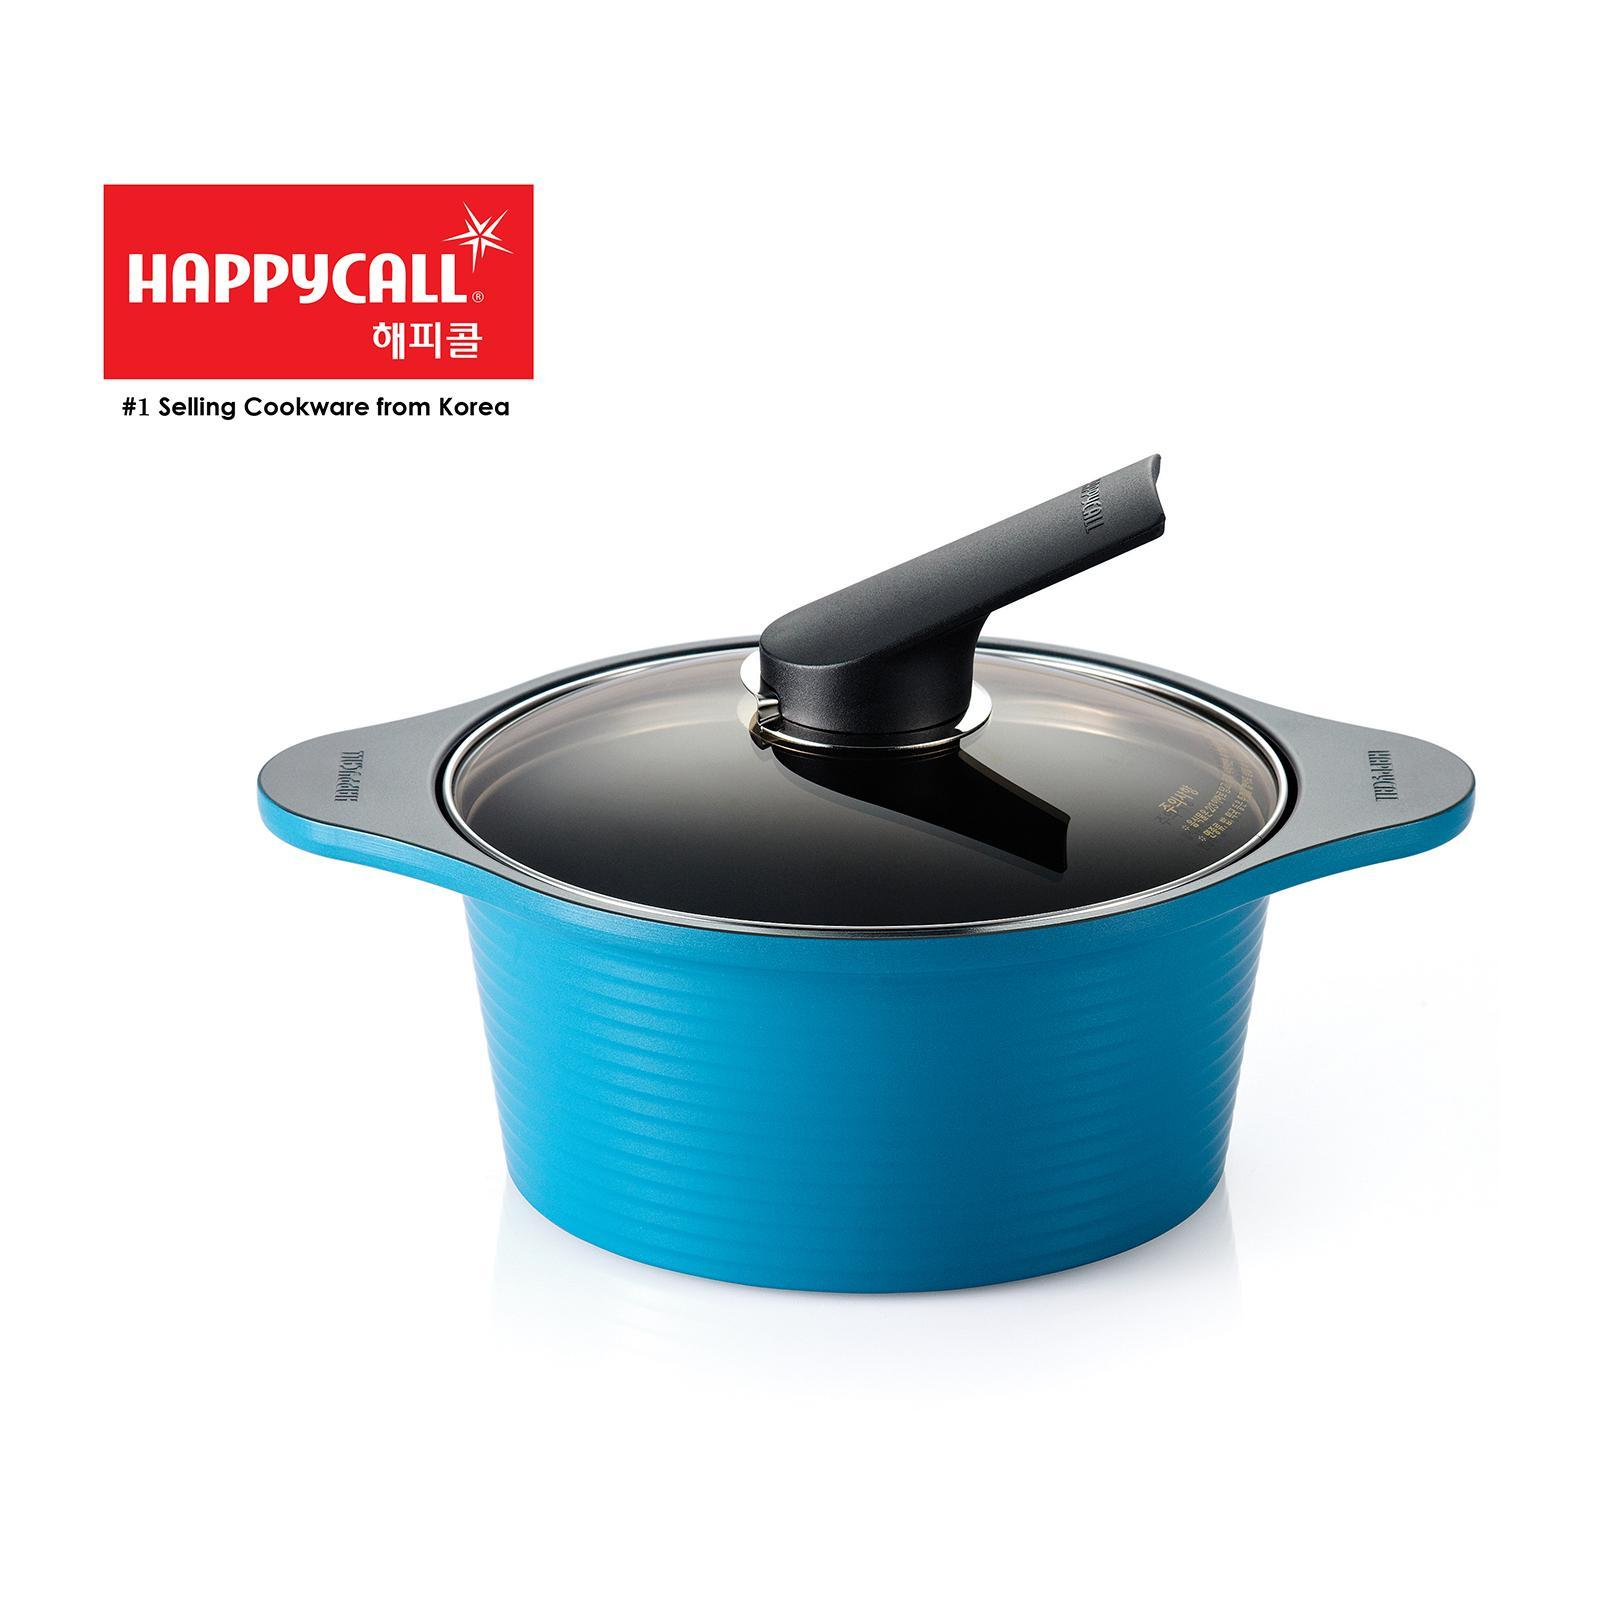 Happycall Die-Cast Stock Pot 20Cm - Blue - By ToTT